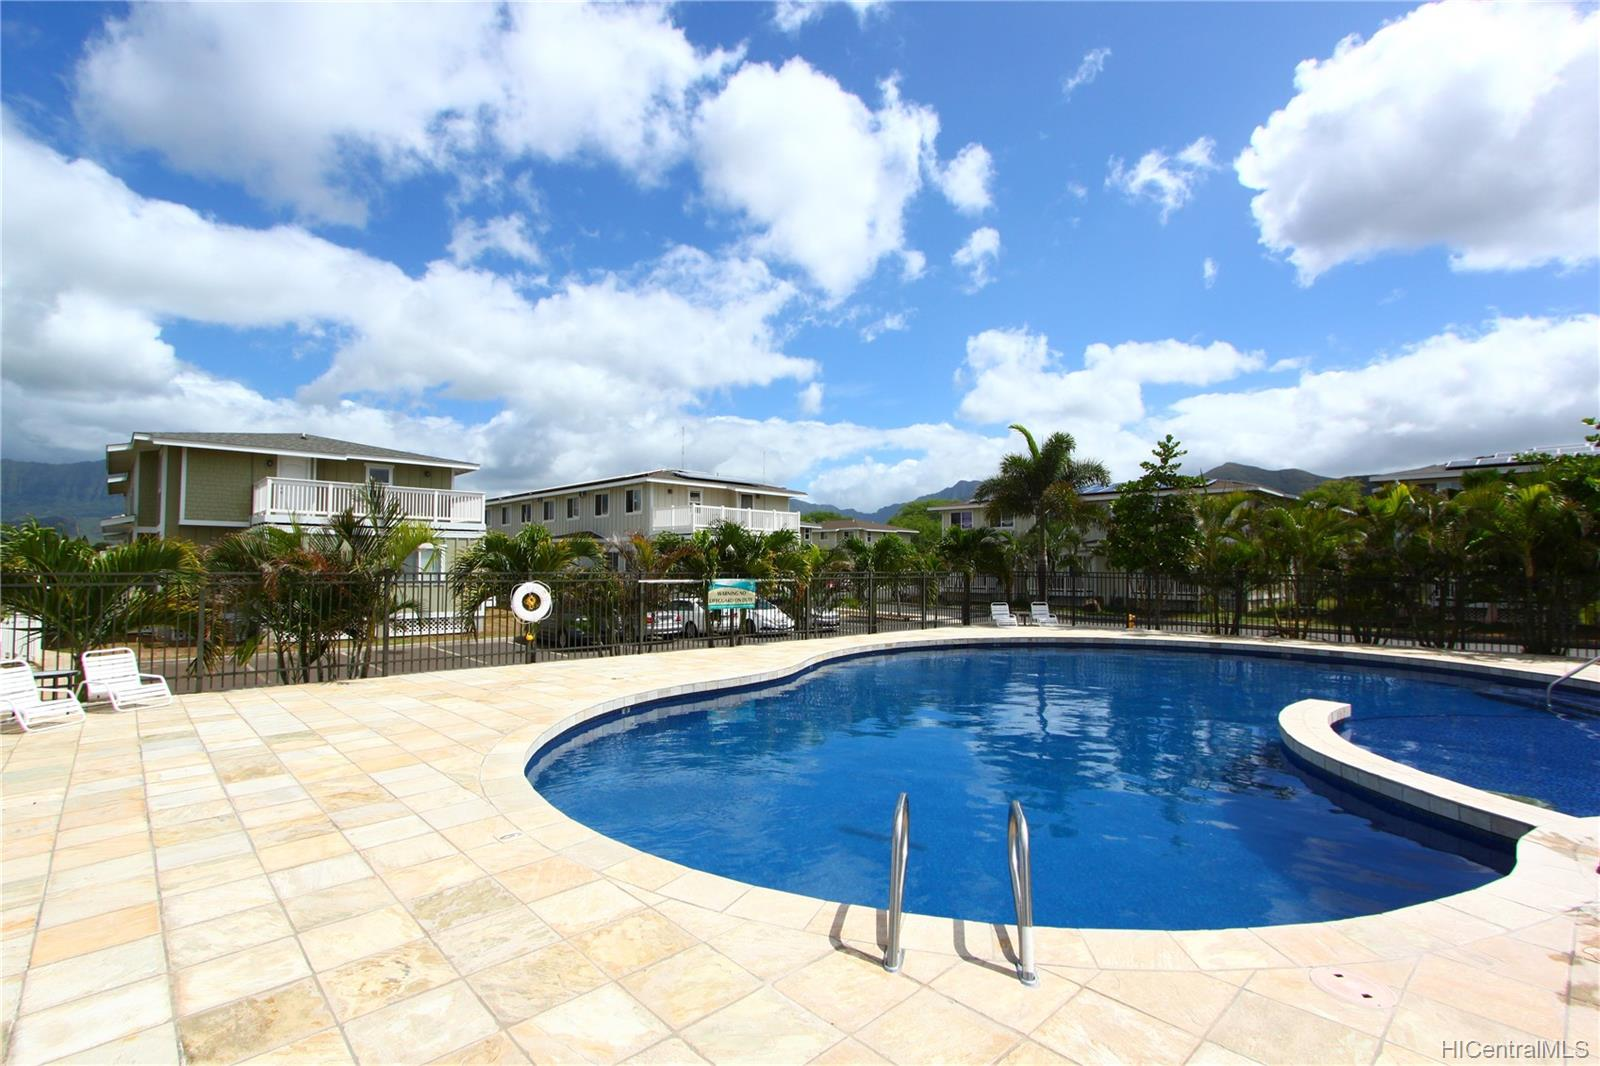 87-176 Maipalaoa Road townhouse # Y59, Waianae, Hawaii - photo 20 of 25